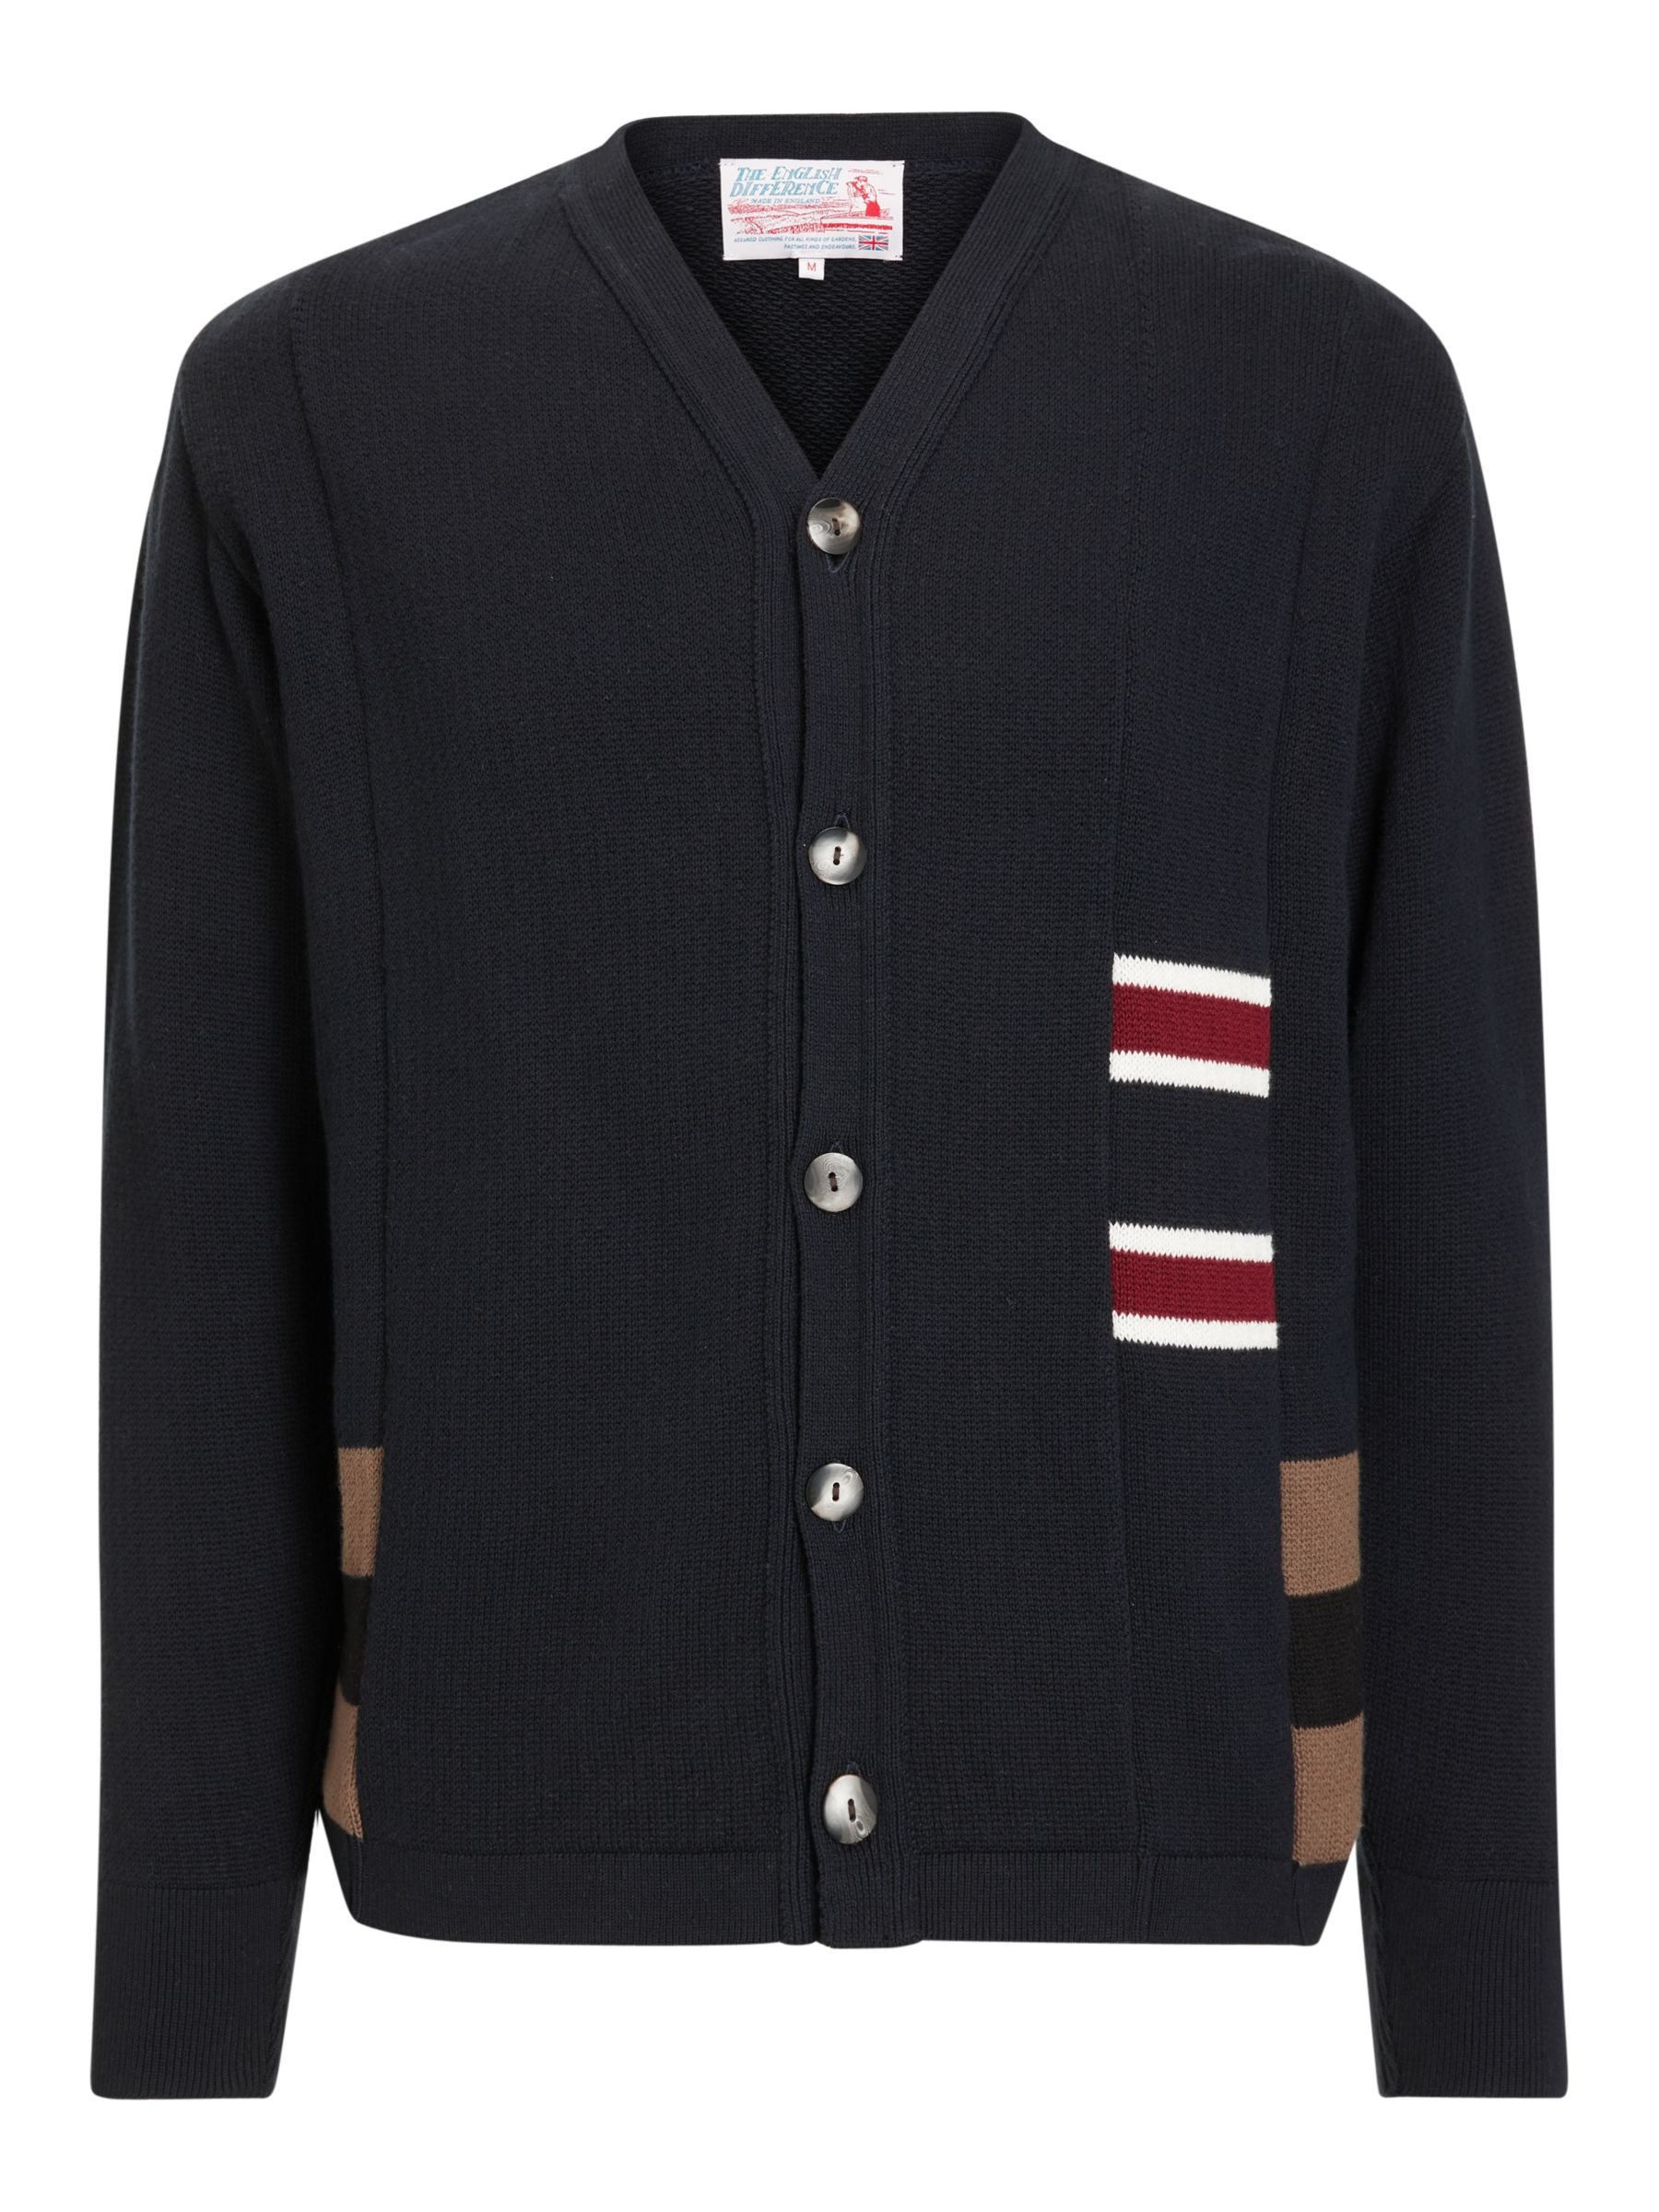 Buy Garbstore The English Difference Rework Cardigan, Navy/White, S Online at johnlewis.com